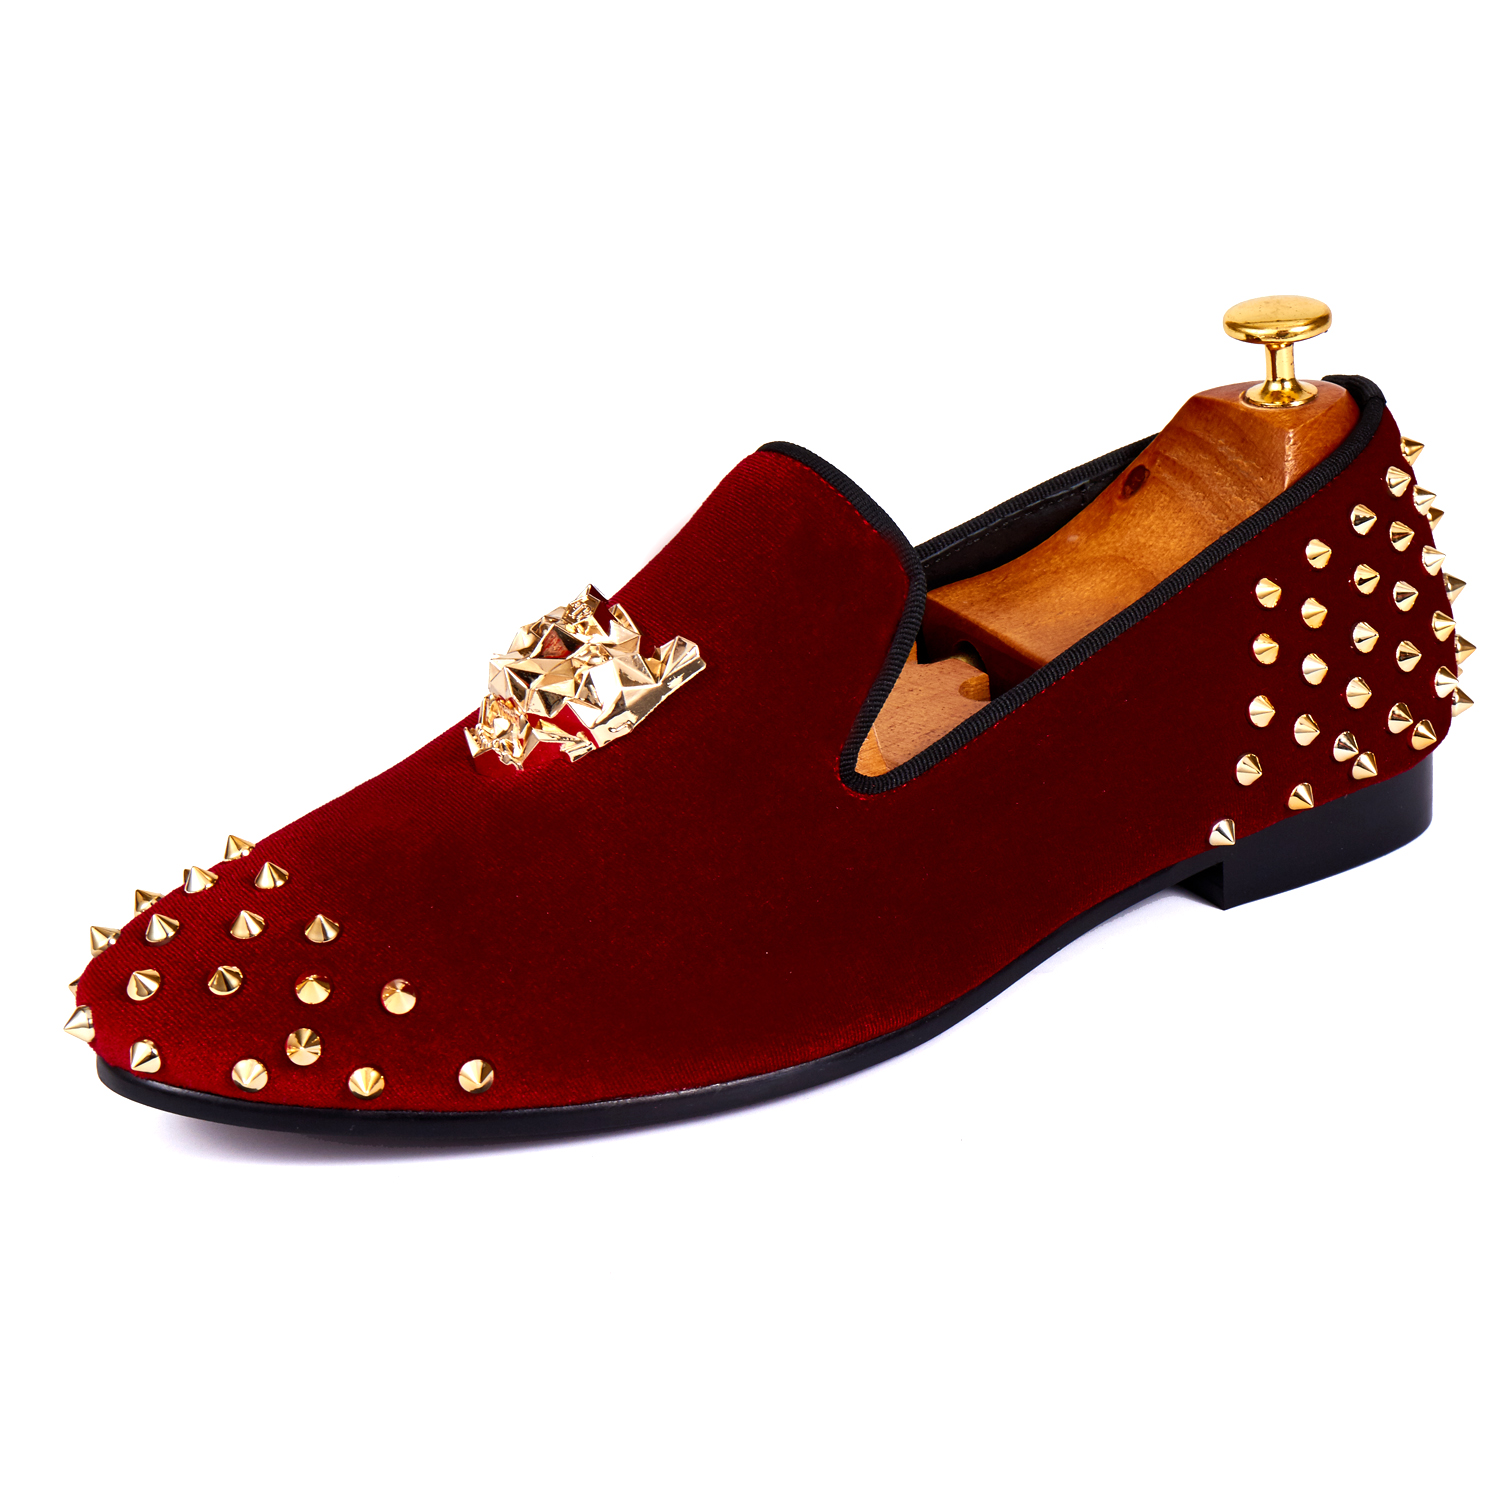 Harpelunde Herenkleding Schoenen Klinknagels Red Velvet Loafer Animal Buckle Flats maat 7-14